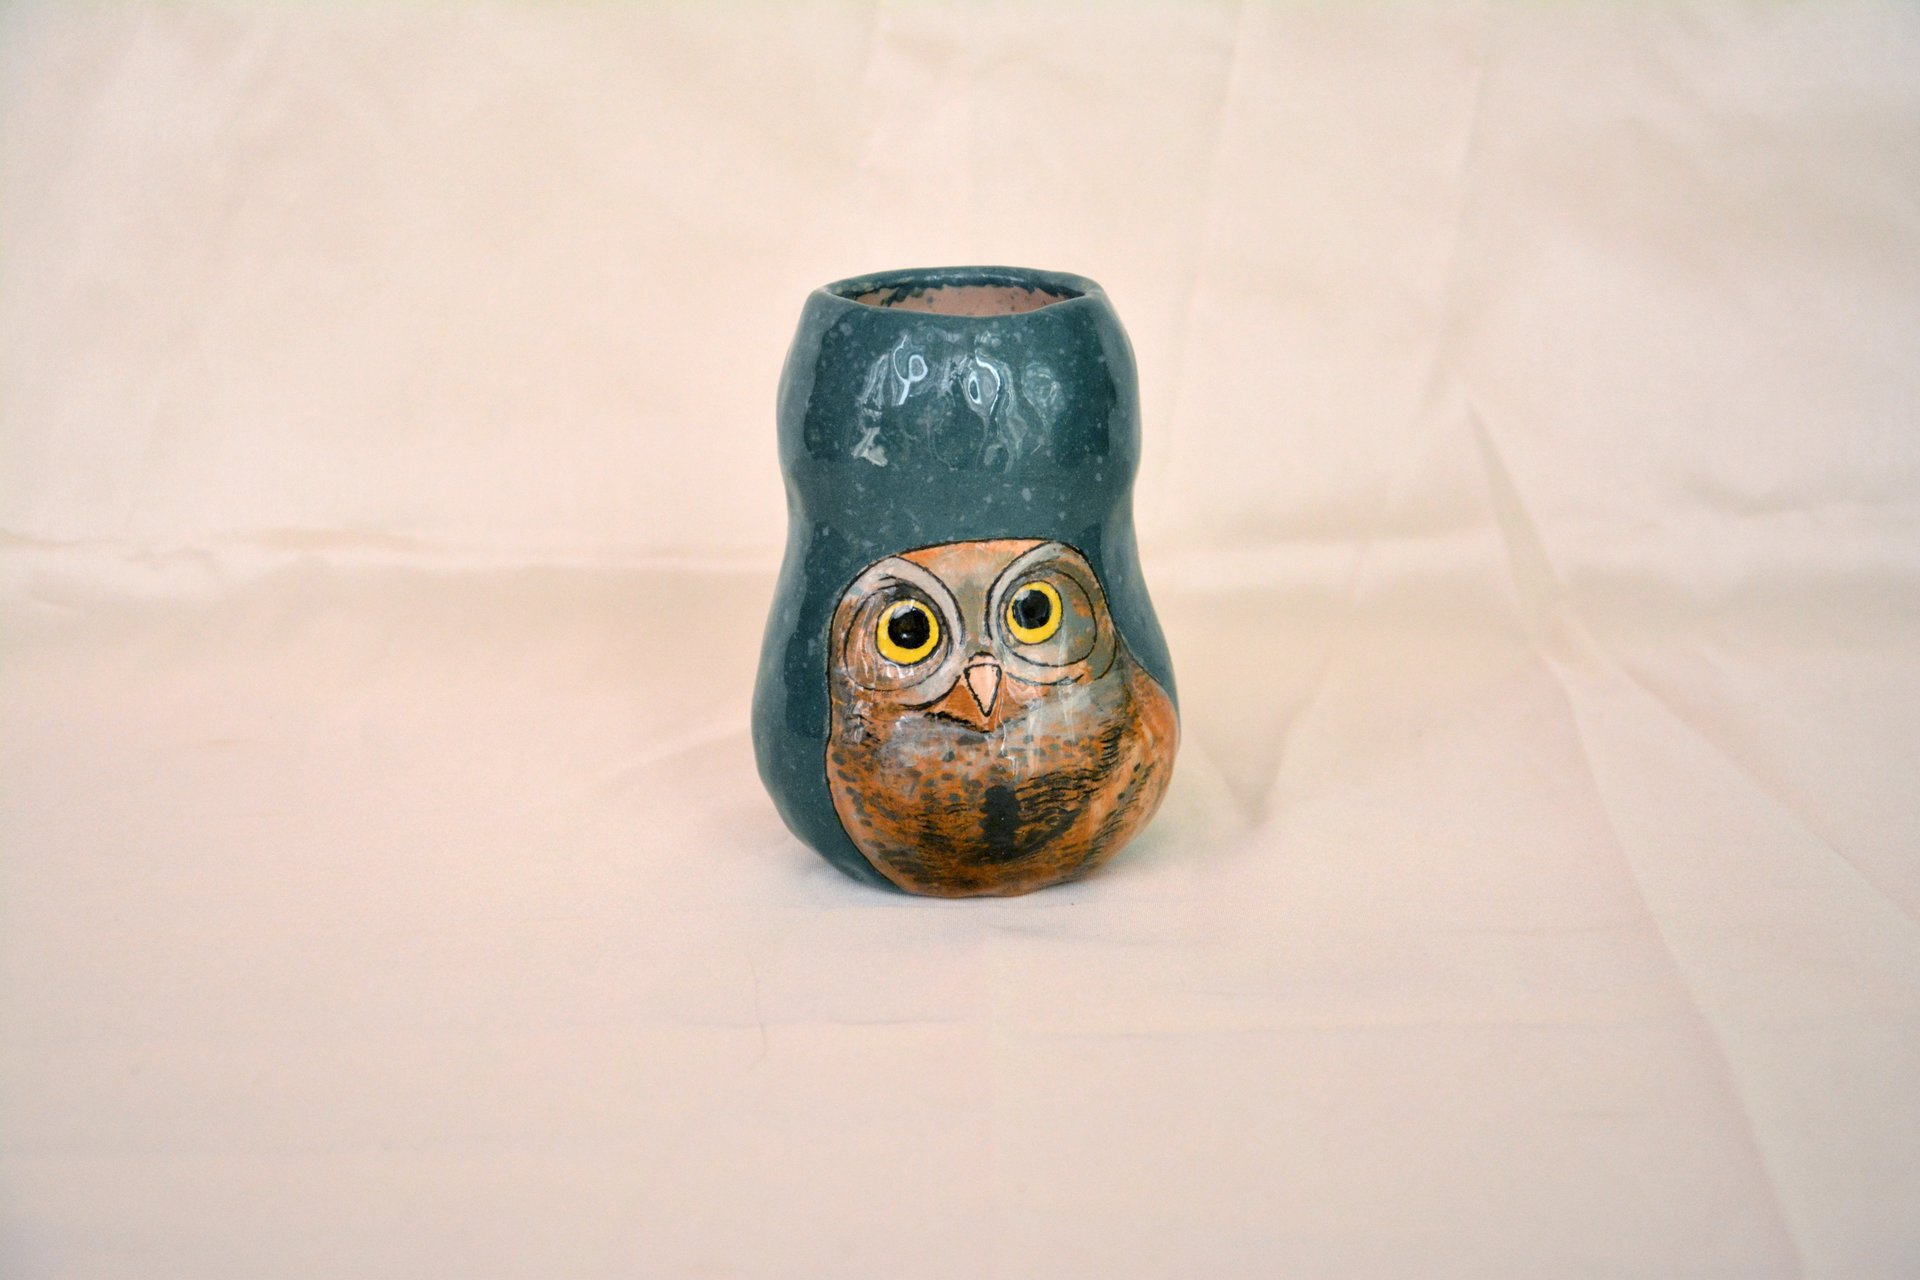 Hand painted vase (with a picture) «Sweet Owlet», height - 11 cm. Photo 18.